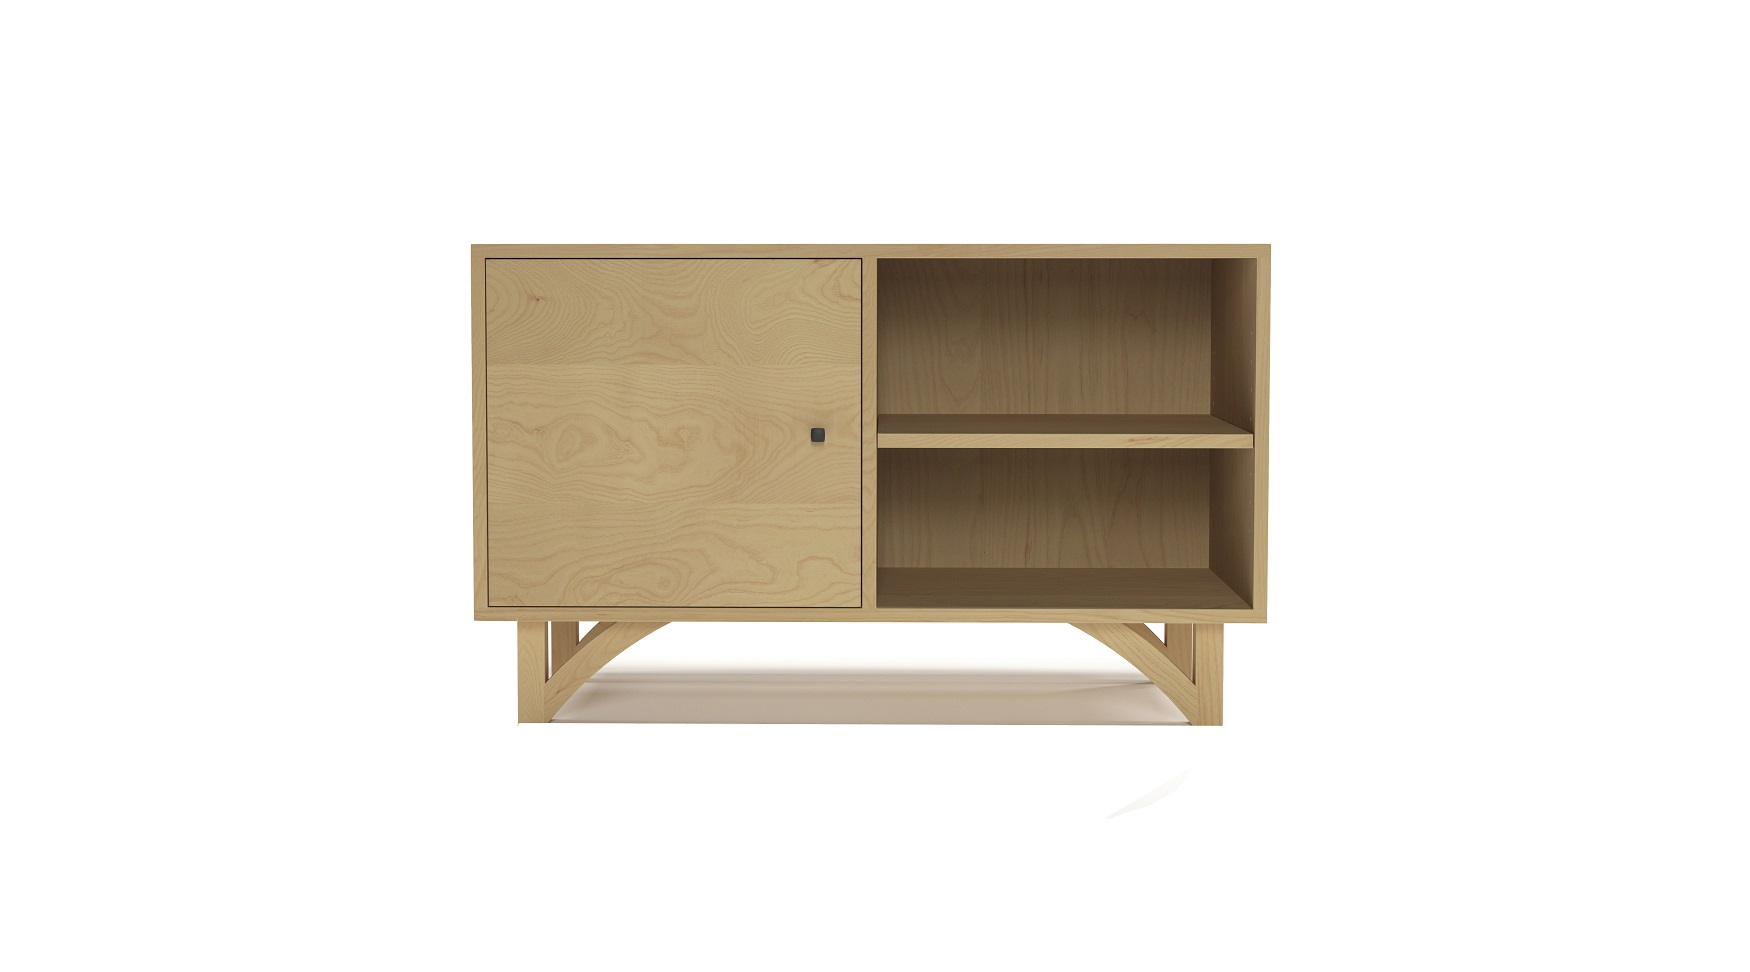 Ash contemporary furniture cabinet with one door and with hand-cut legs